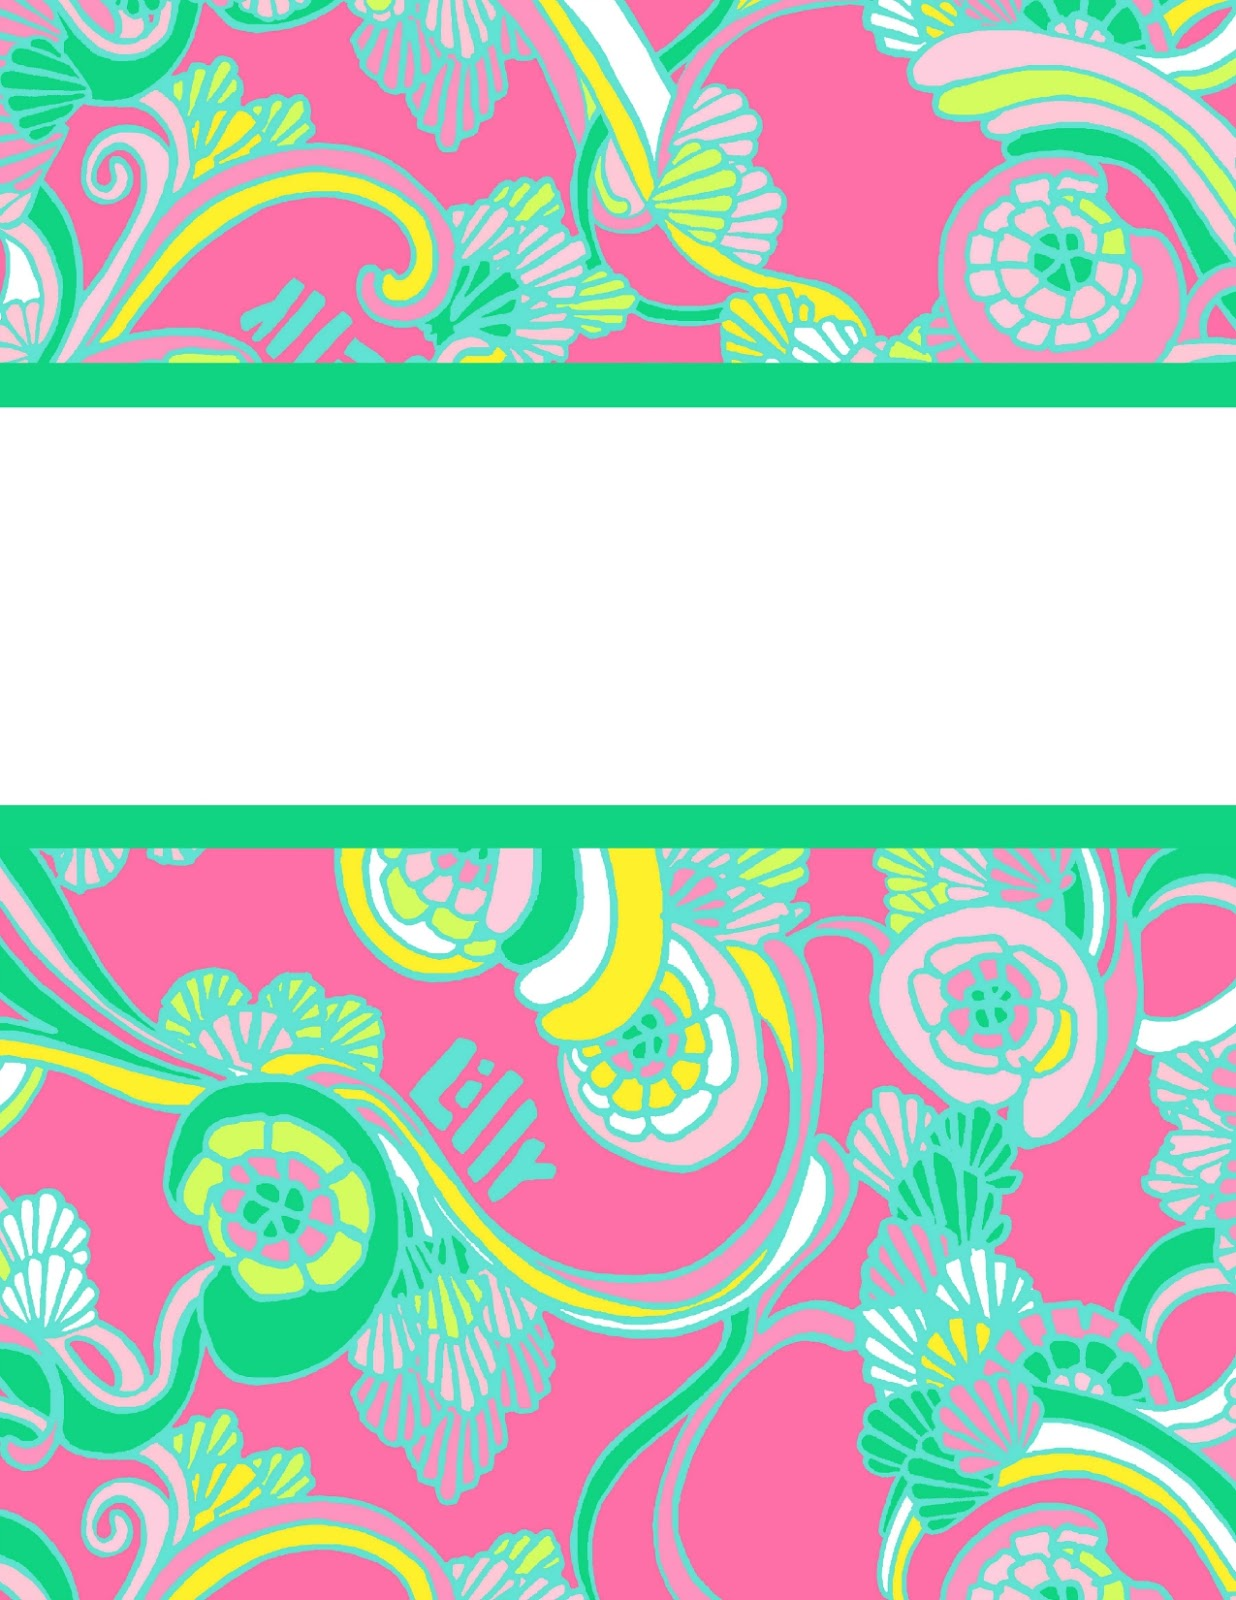 With lilly for the third time lilly pulitzer binder covers 2015